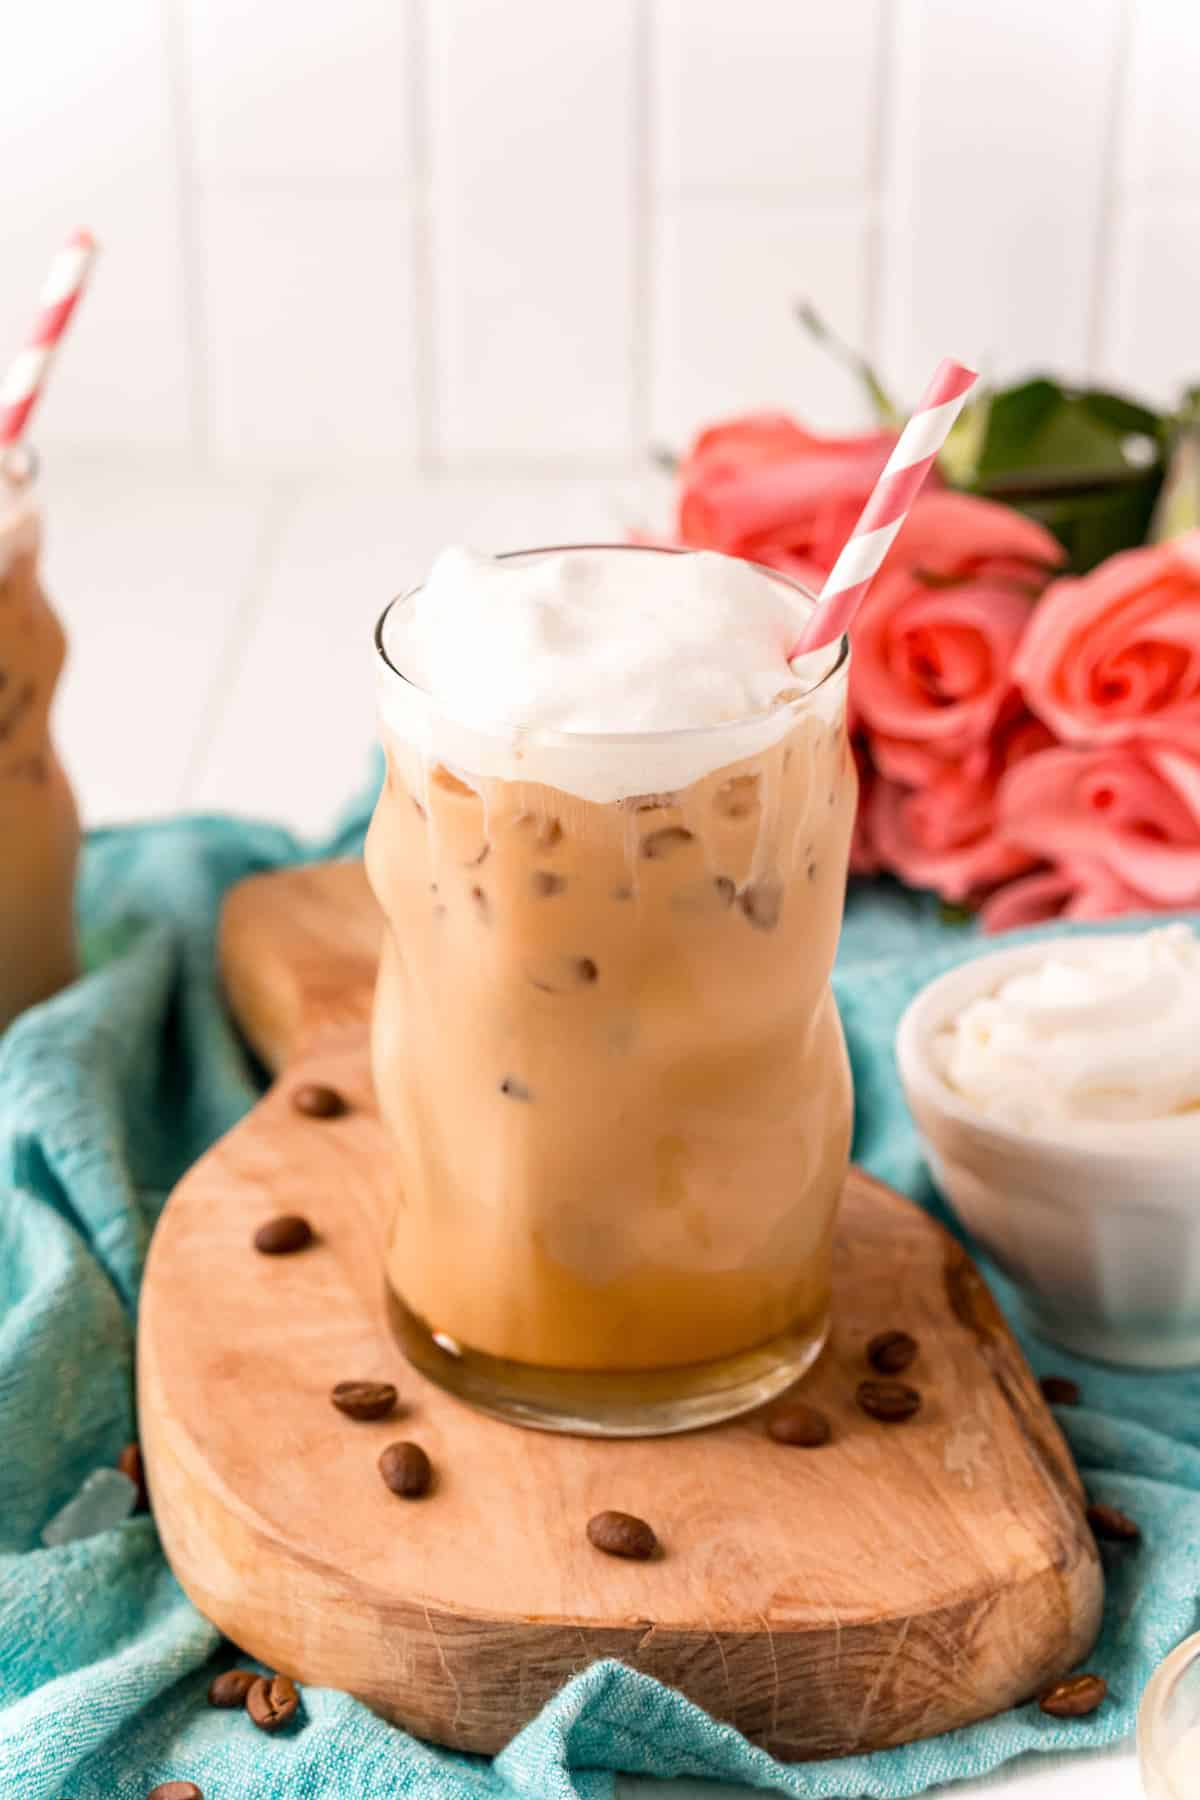 Whipped cream topped iced coffee.